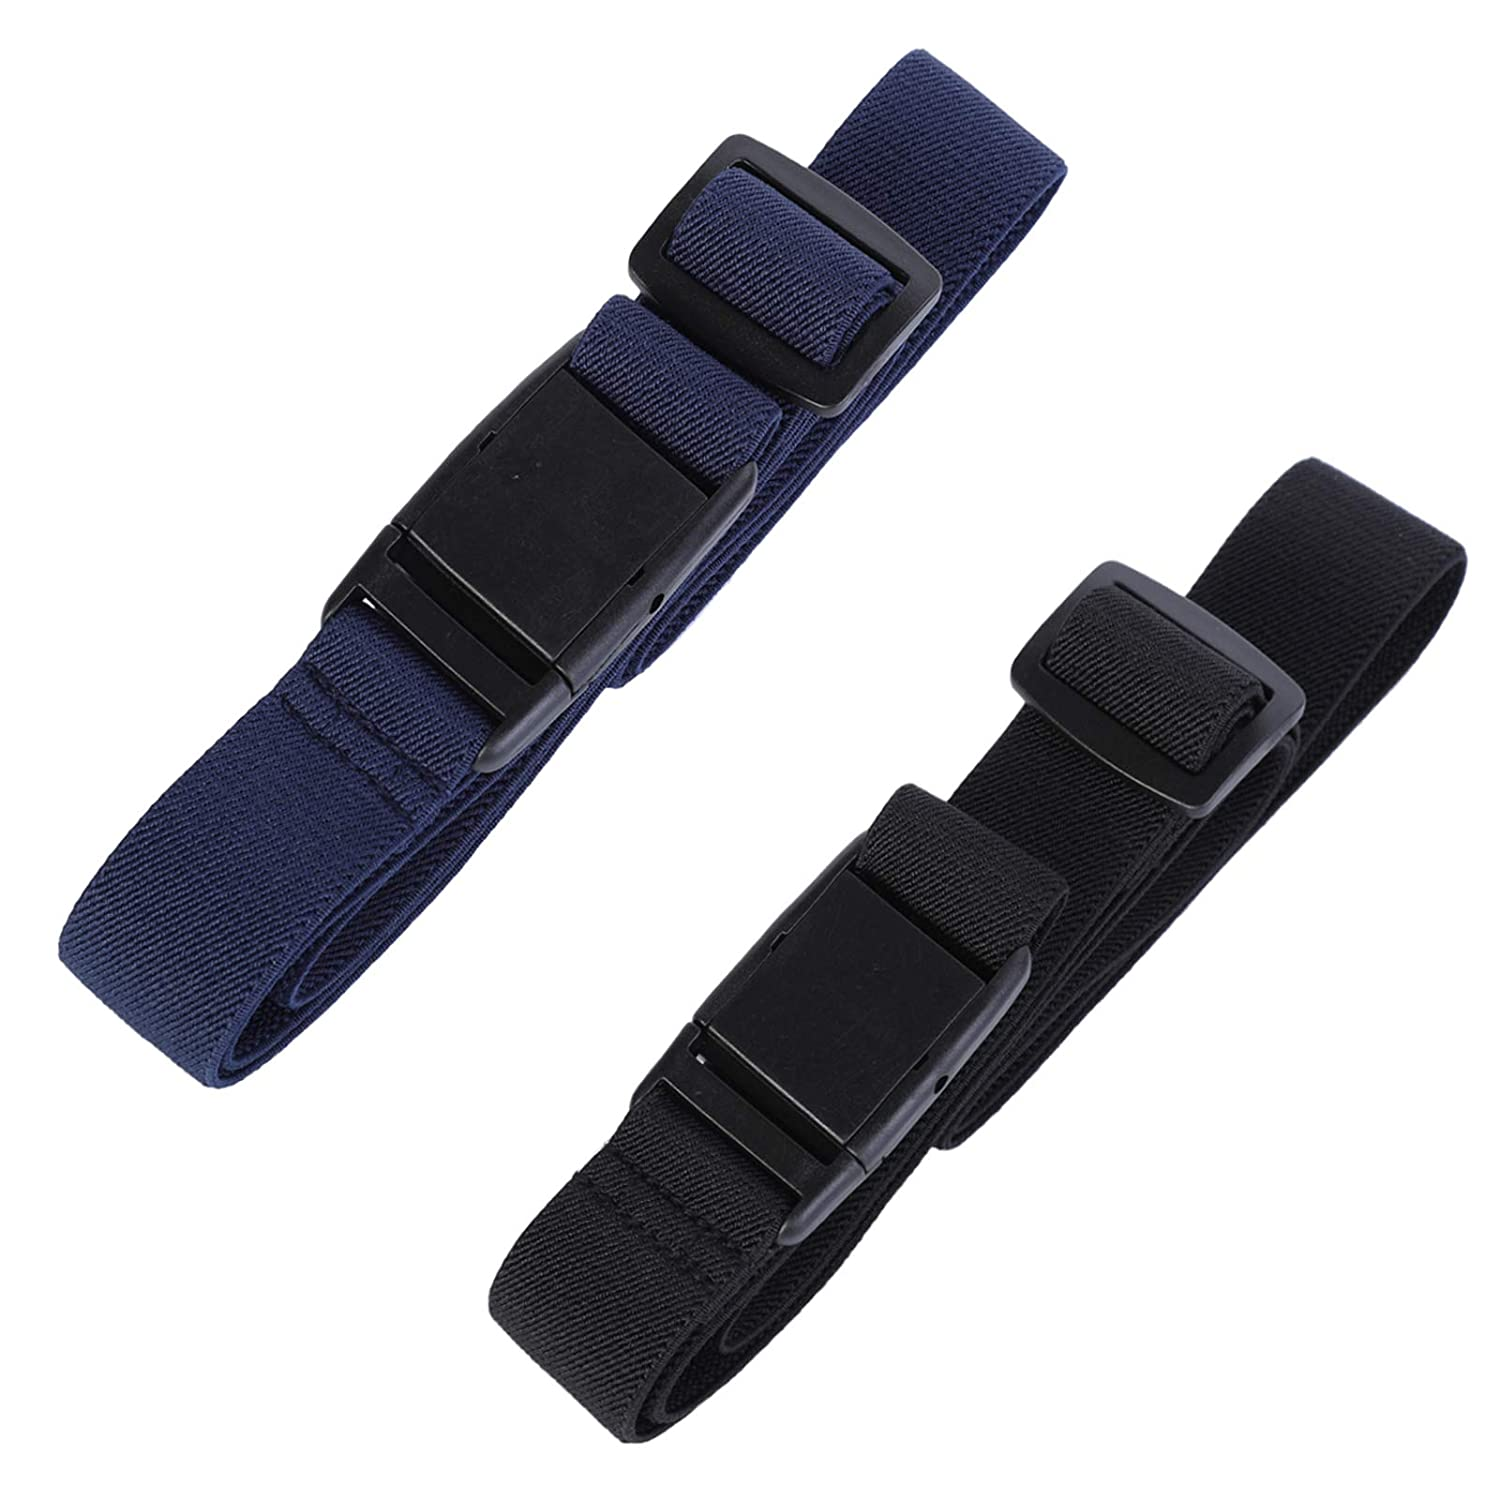 Womens Invisible Belt Elastic Adjustable - No Show Web Belts For Women (Khaki/Navy blue/Black) GY024C6JH01